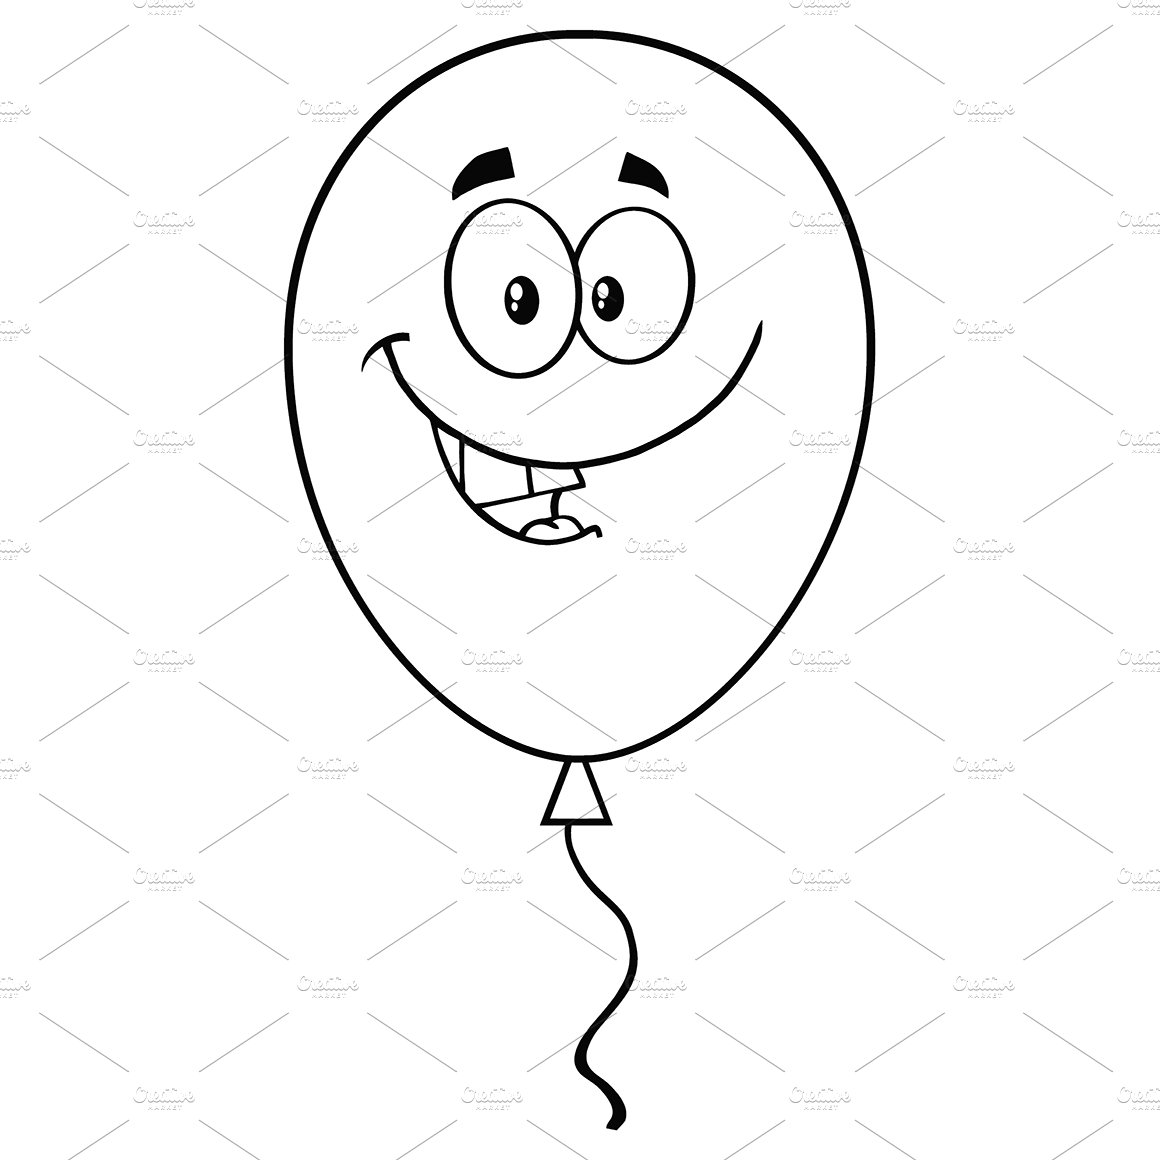 Smiling Black And White Balloon  Illustrations  Creative -9462